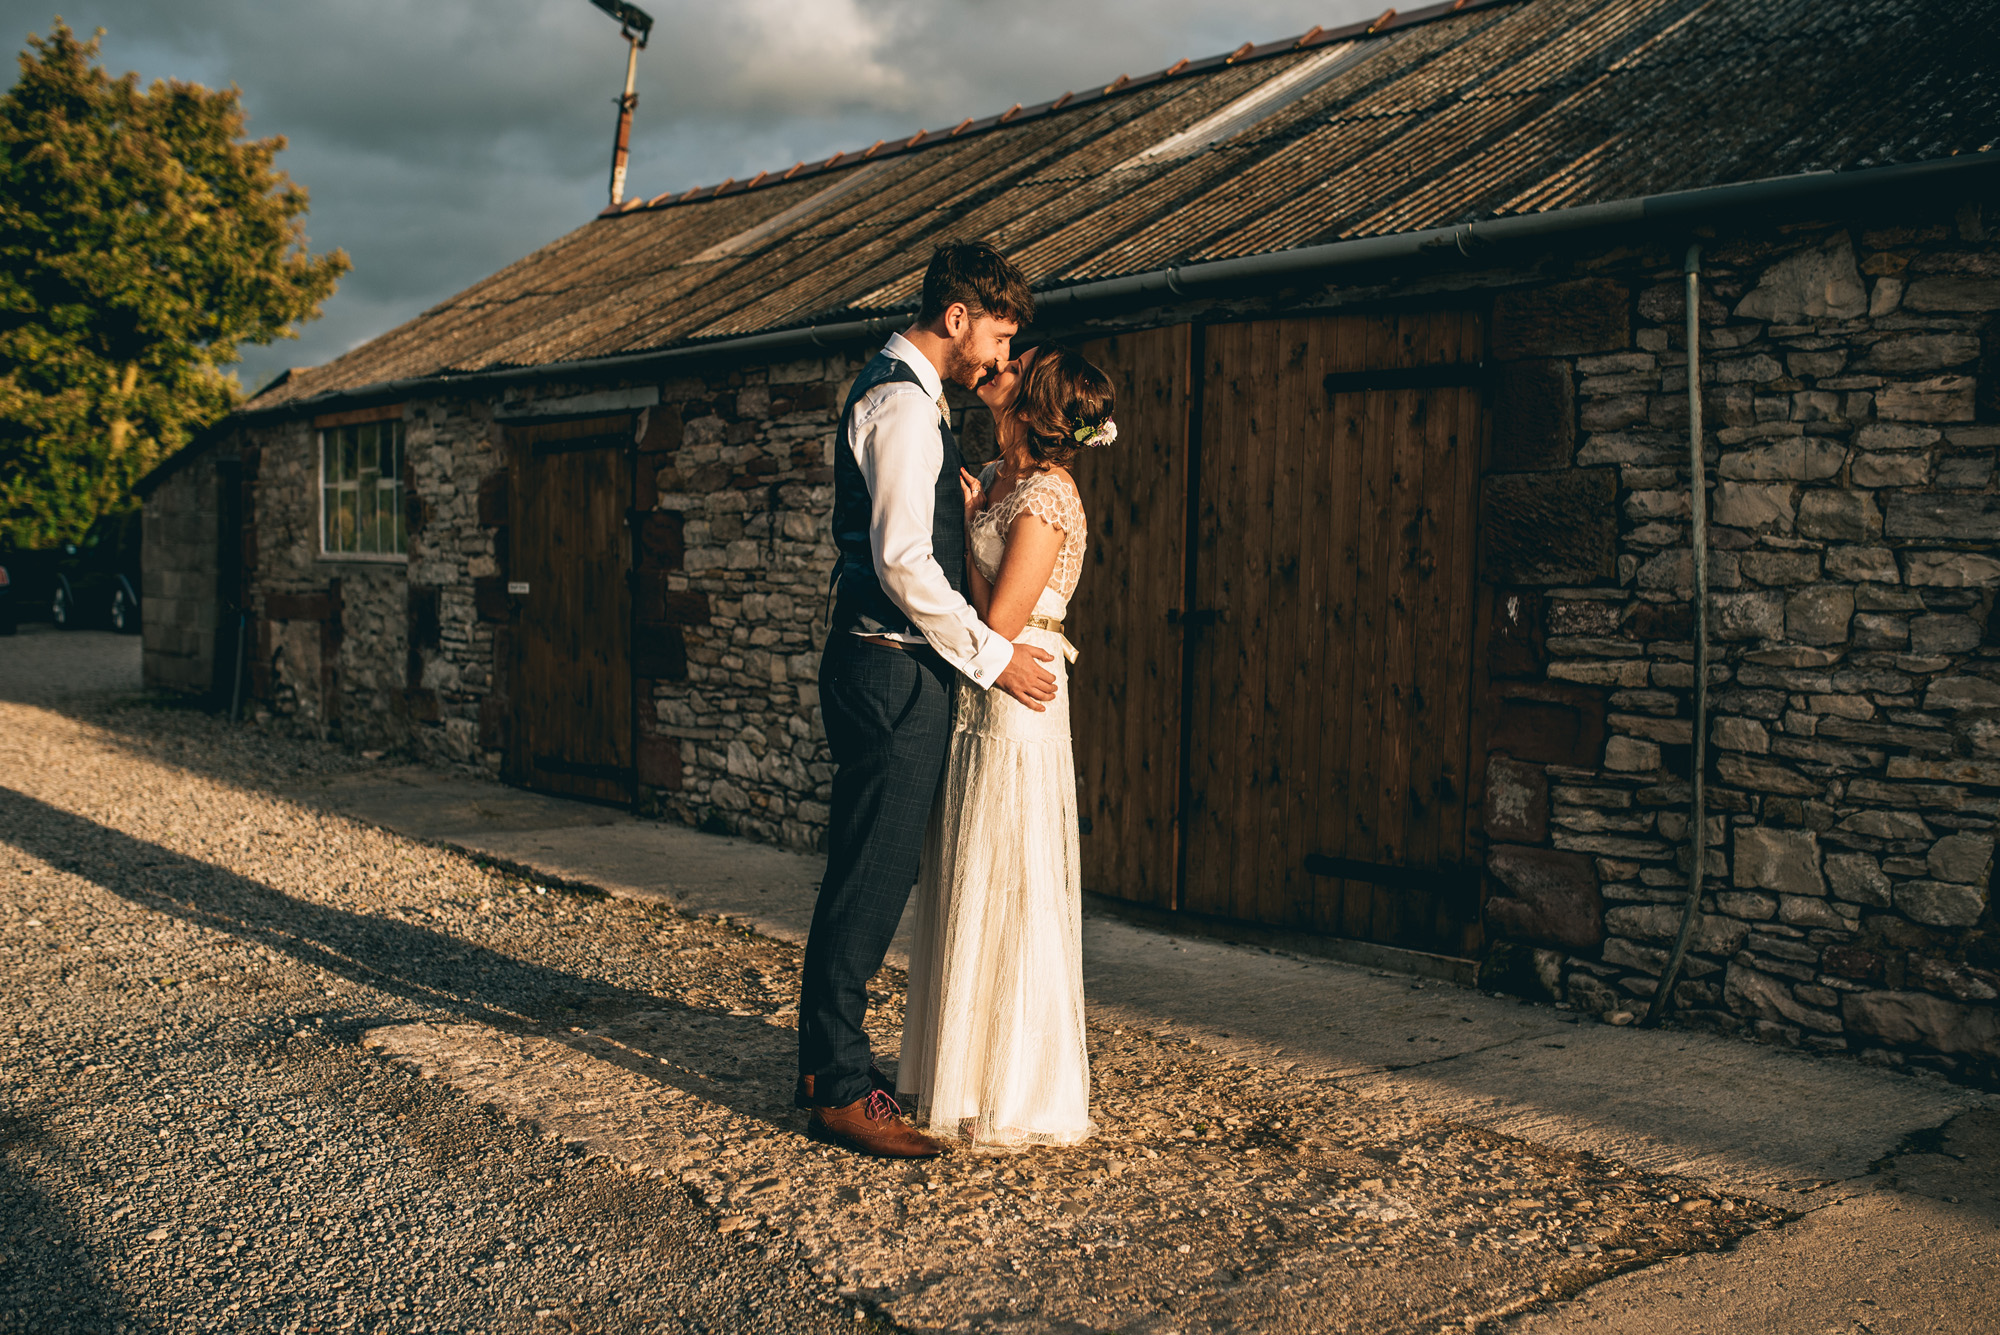 Kate-Beaumont-Sheffield-Lucy-Bohemian-Lace-Dress-Barn-Wedding-Cumbria-43.jpg